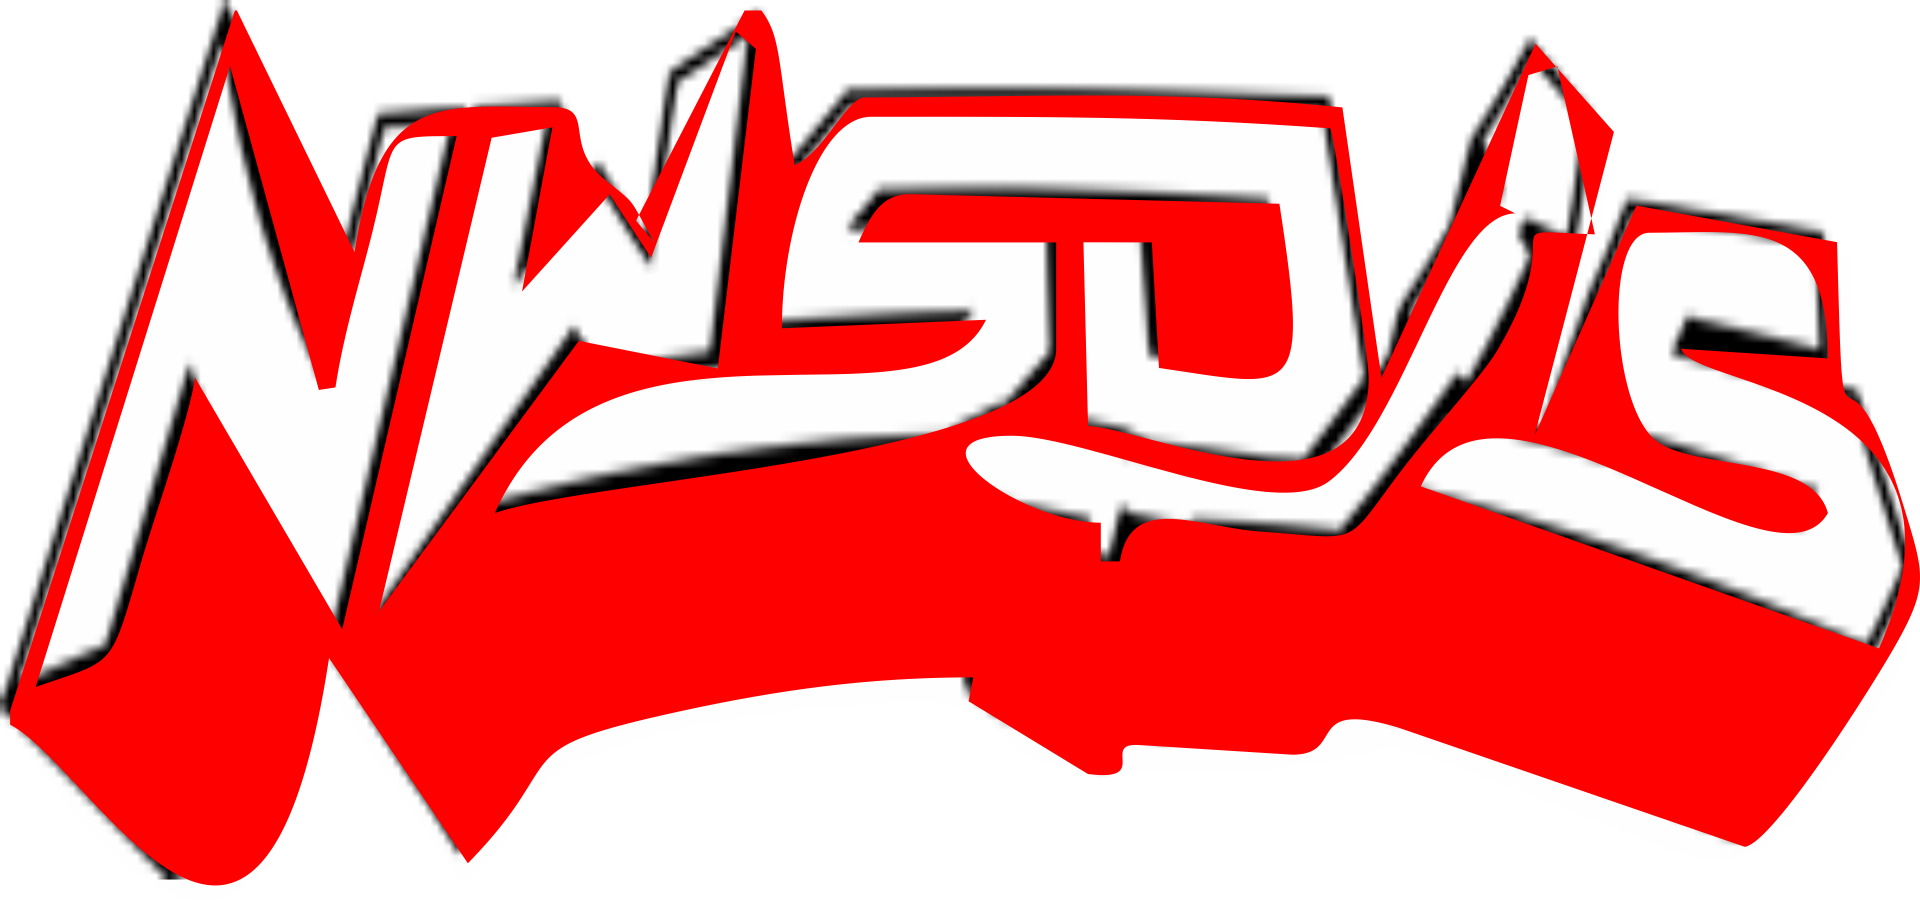 NWSDJS LOGO BEST MIAMI DJS